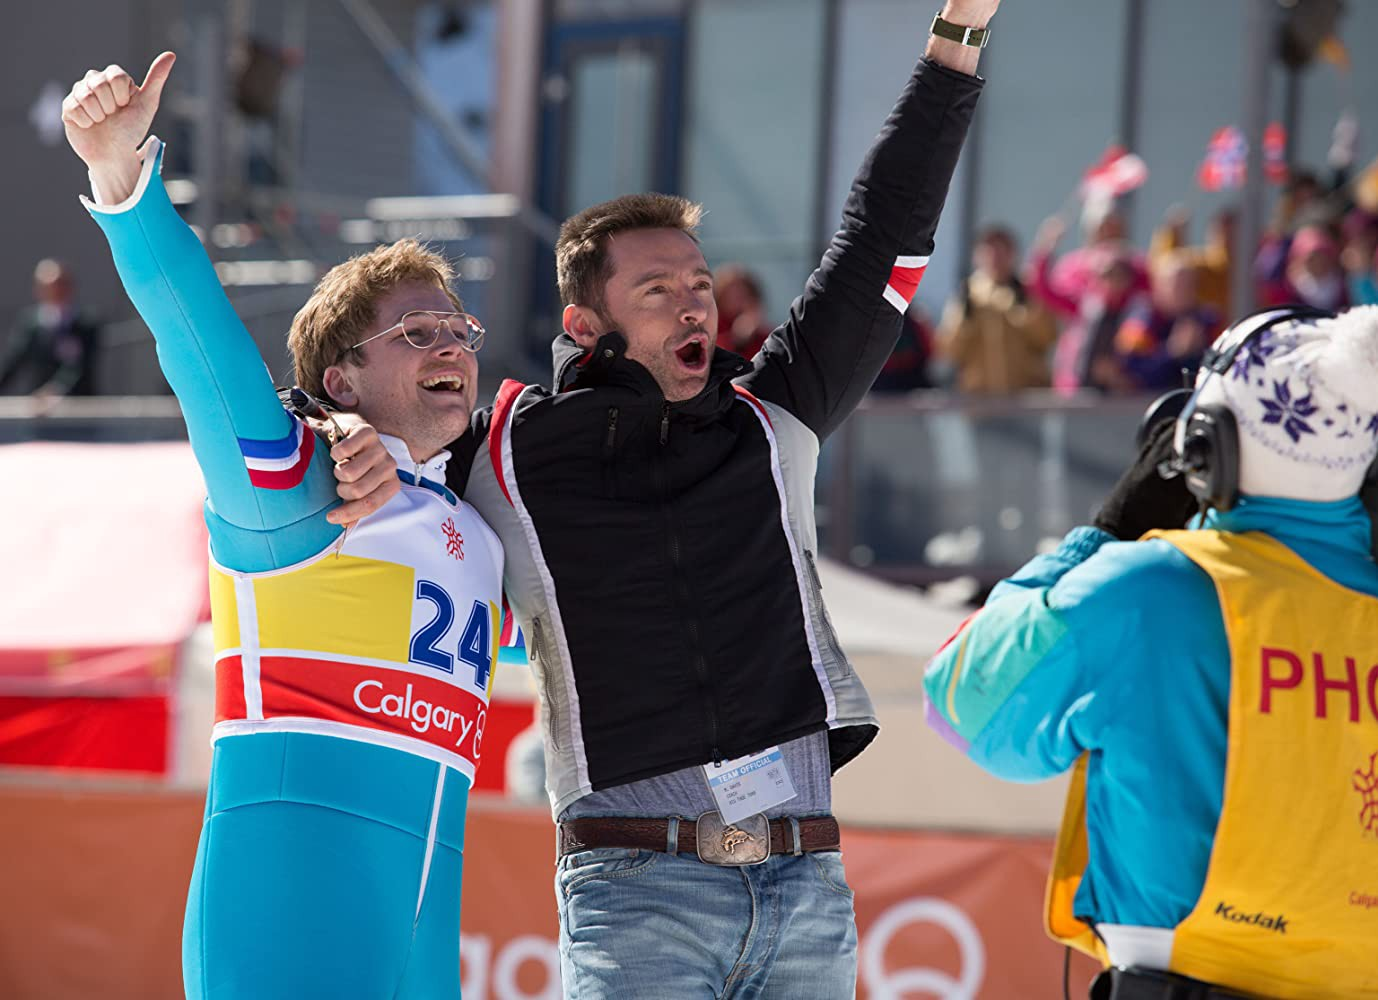 eddie the eagle full movie online free